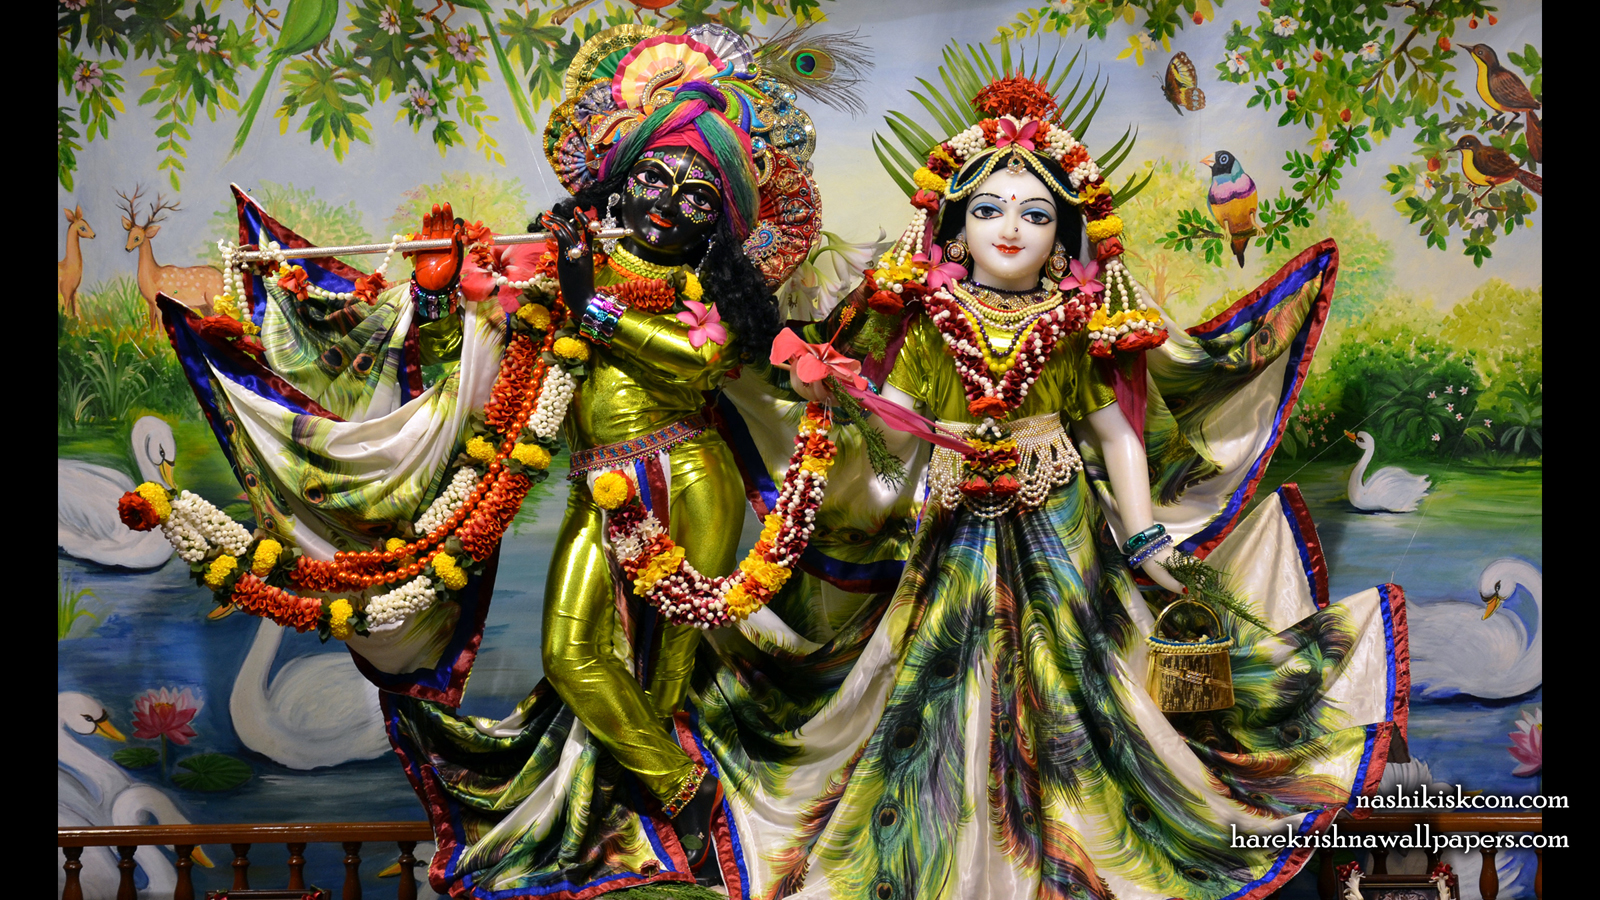 Sri Sri Radha Madan Gopal Wallpaper (004) Size 1600x900 Download